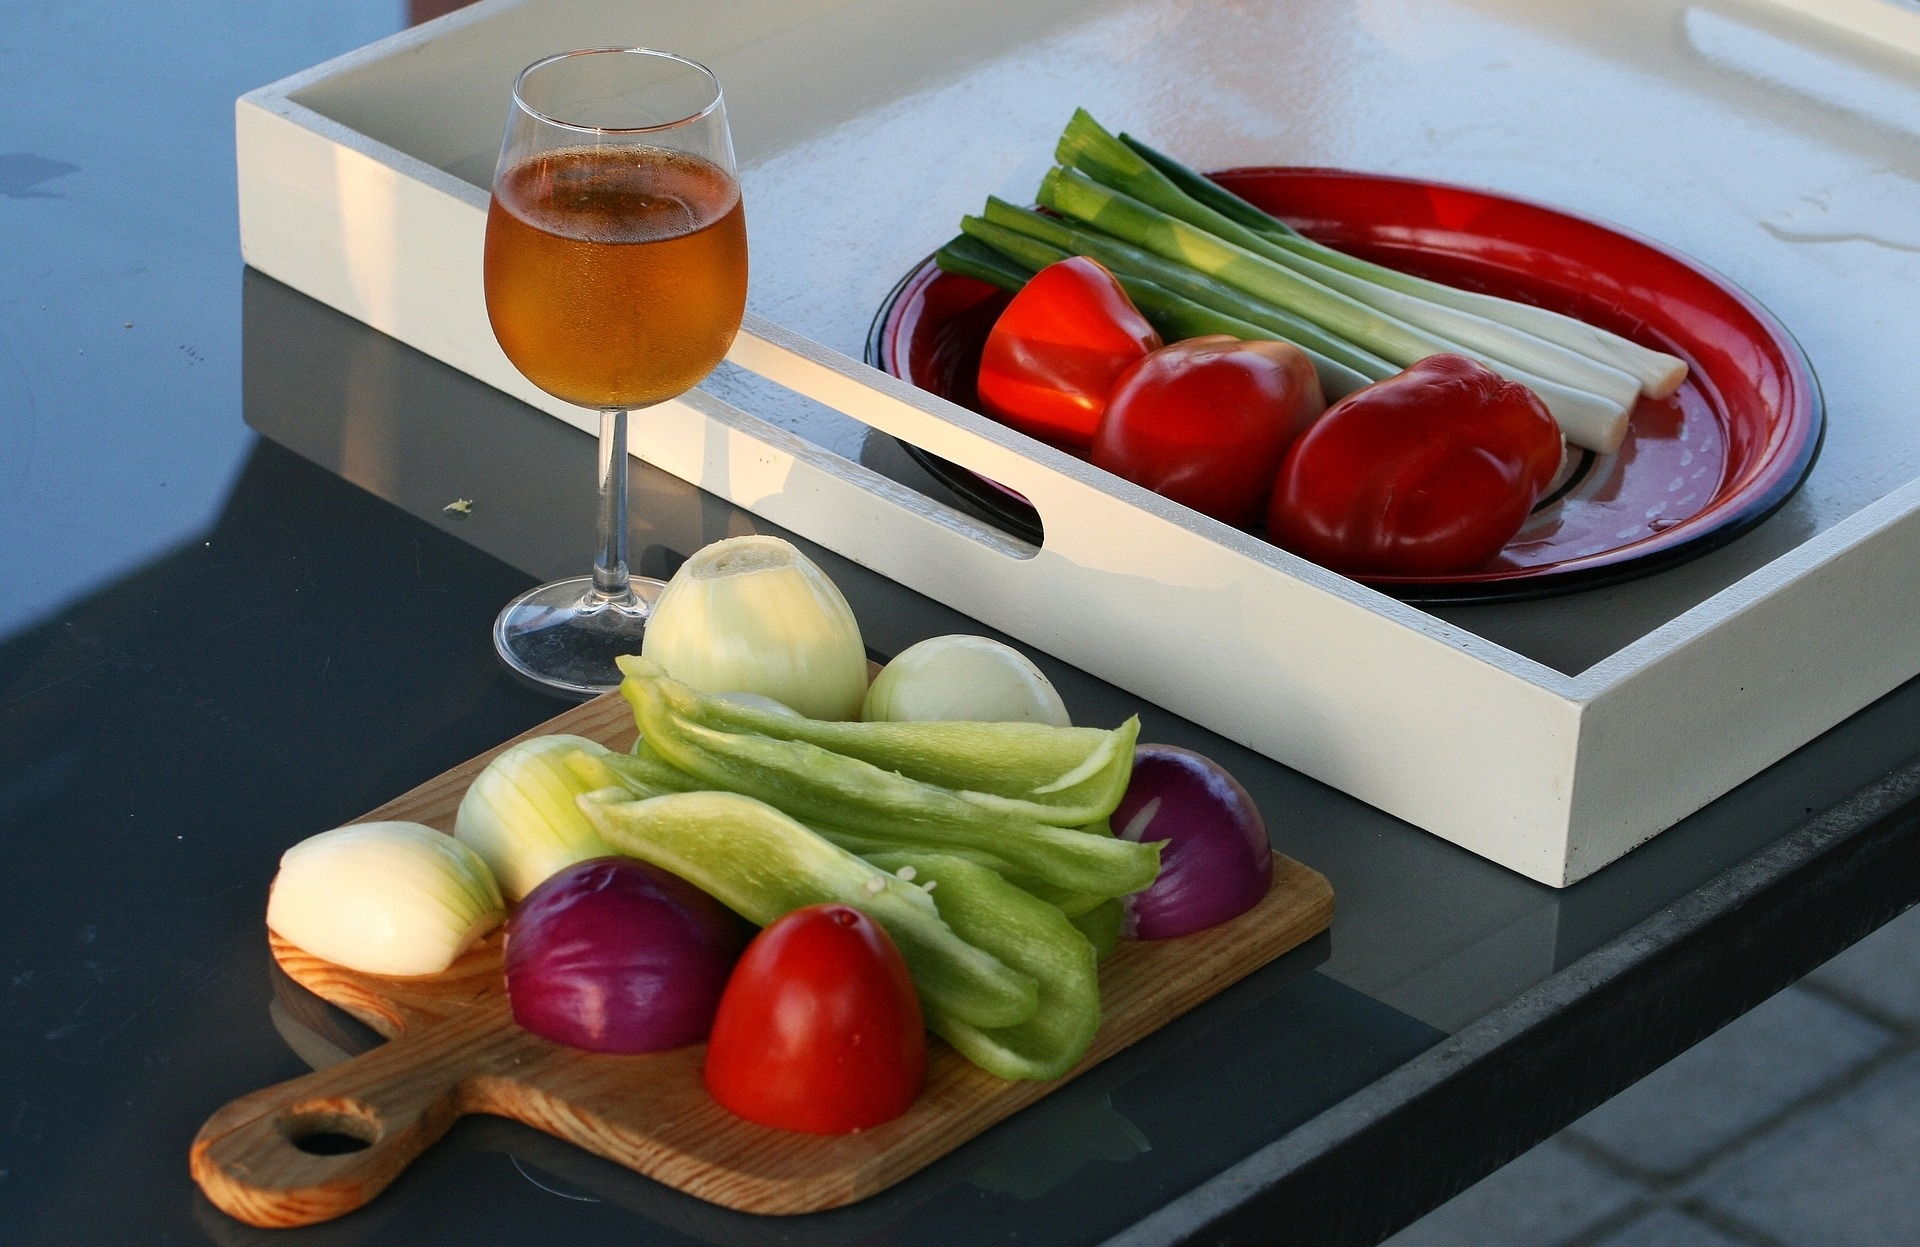 Garden-Fresh Veggies and Wines … Not a Tricky Pairing!